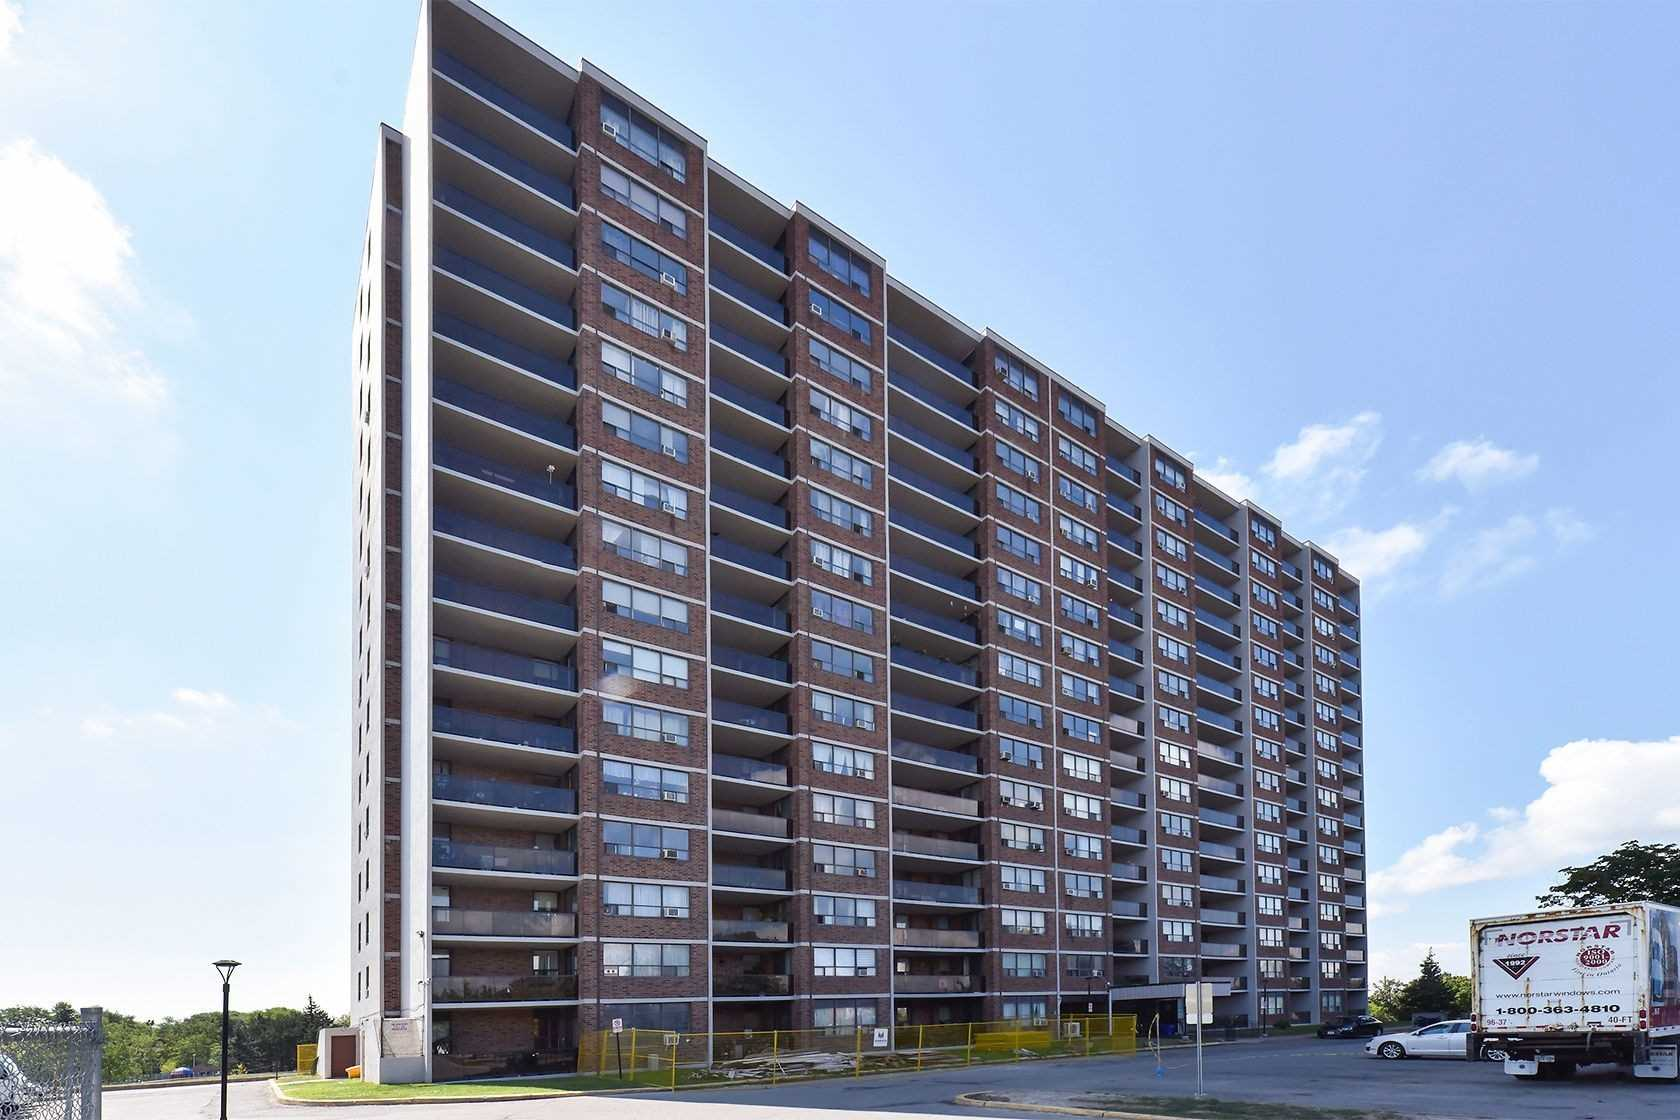 45 Sunrise Ave, Toronto, Ontario M4A2S3, 2 Bedrooms Bedrooms, 7 Rooms Rooms,1 BathroomBathrooms,Condo Apt,For Sale,Sunrise,C4895026